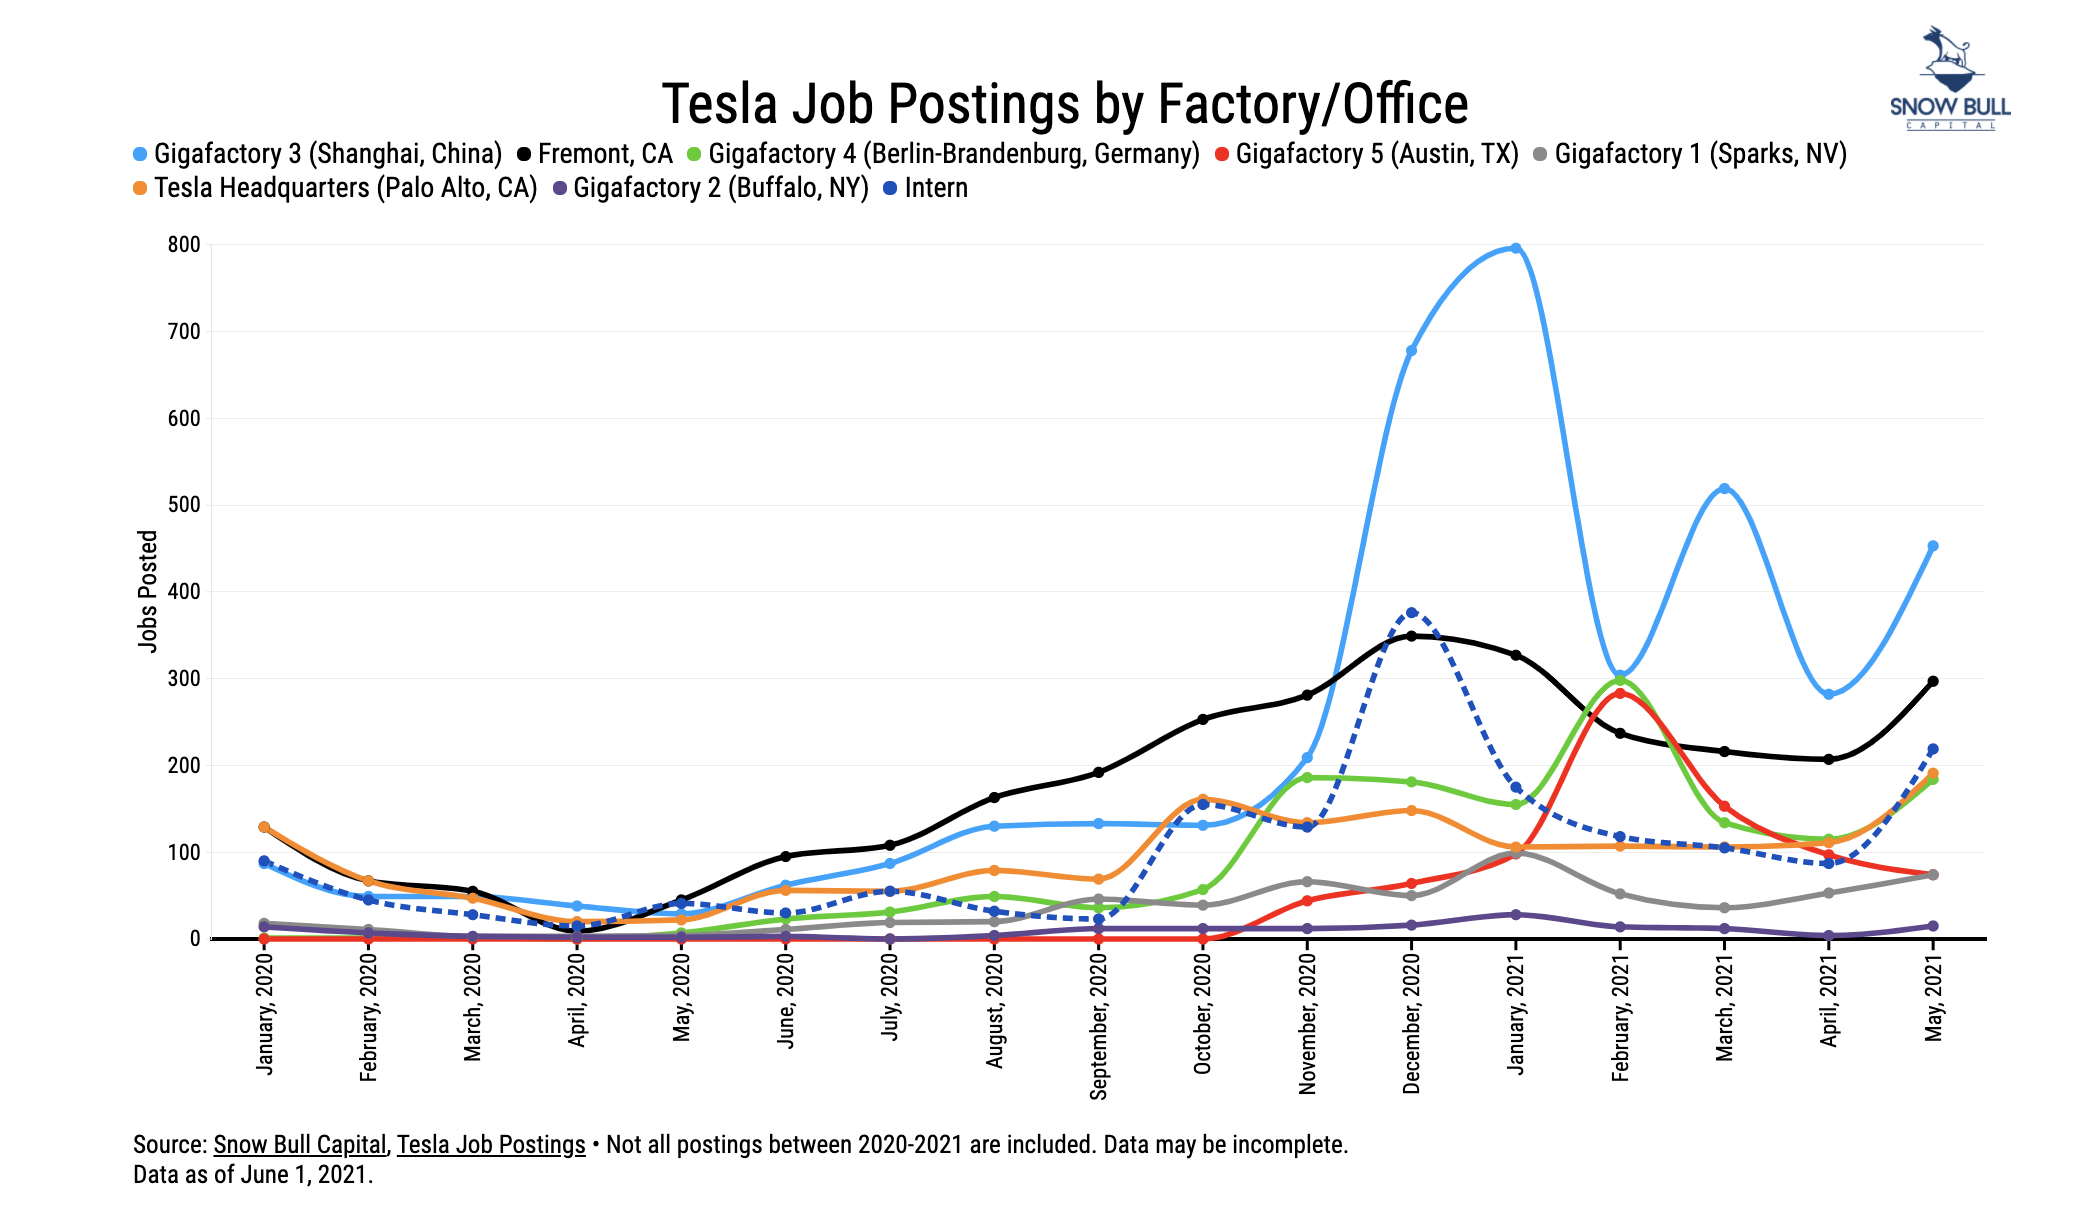 Tesla Jobs Postings Chart courtesy of Snow Bull CleanTechnica by Factory